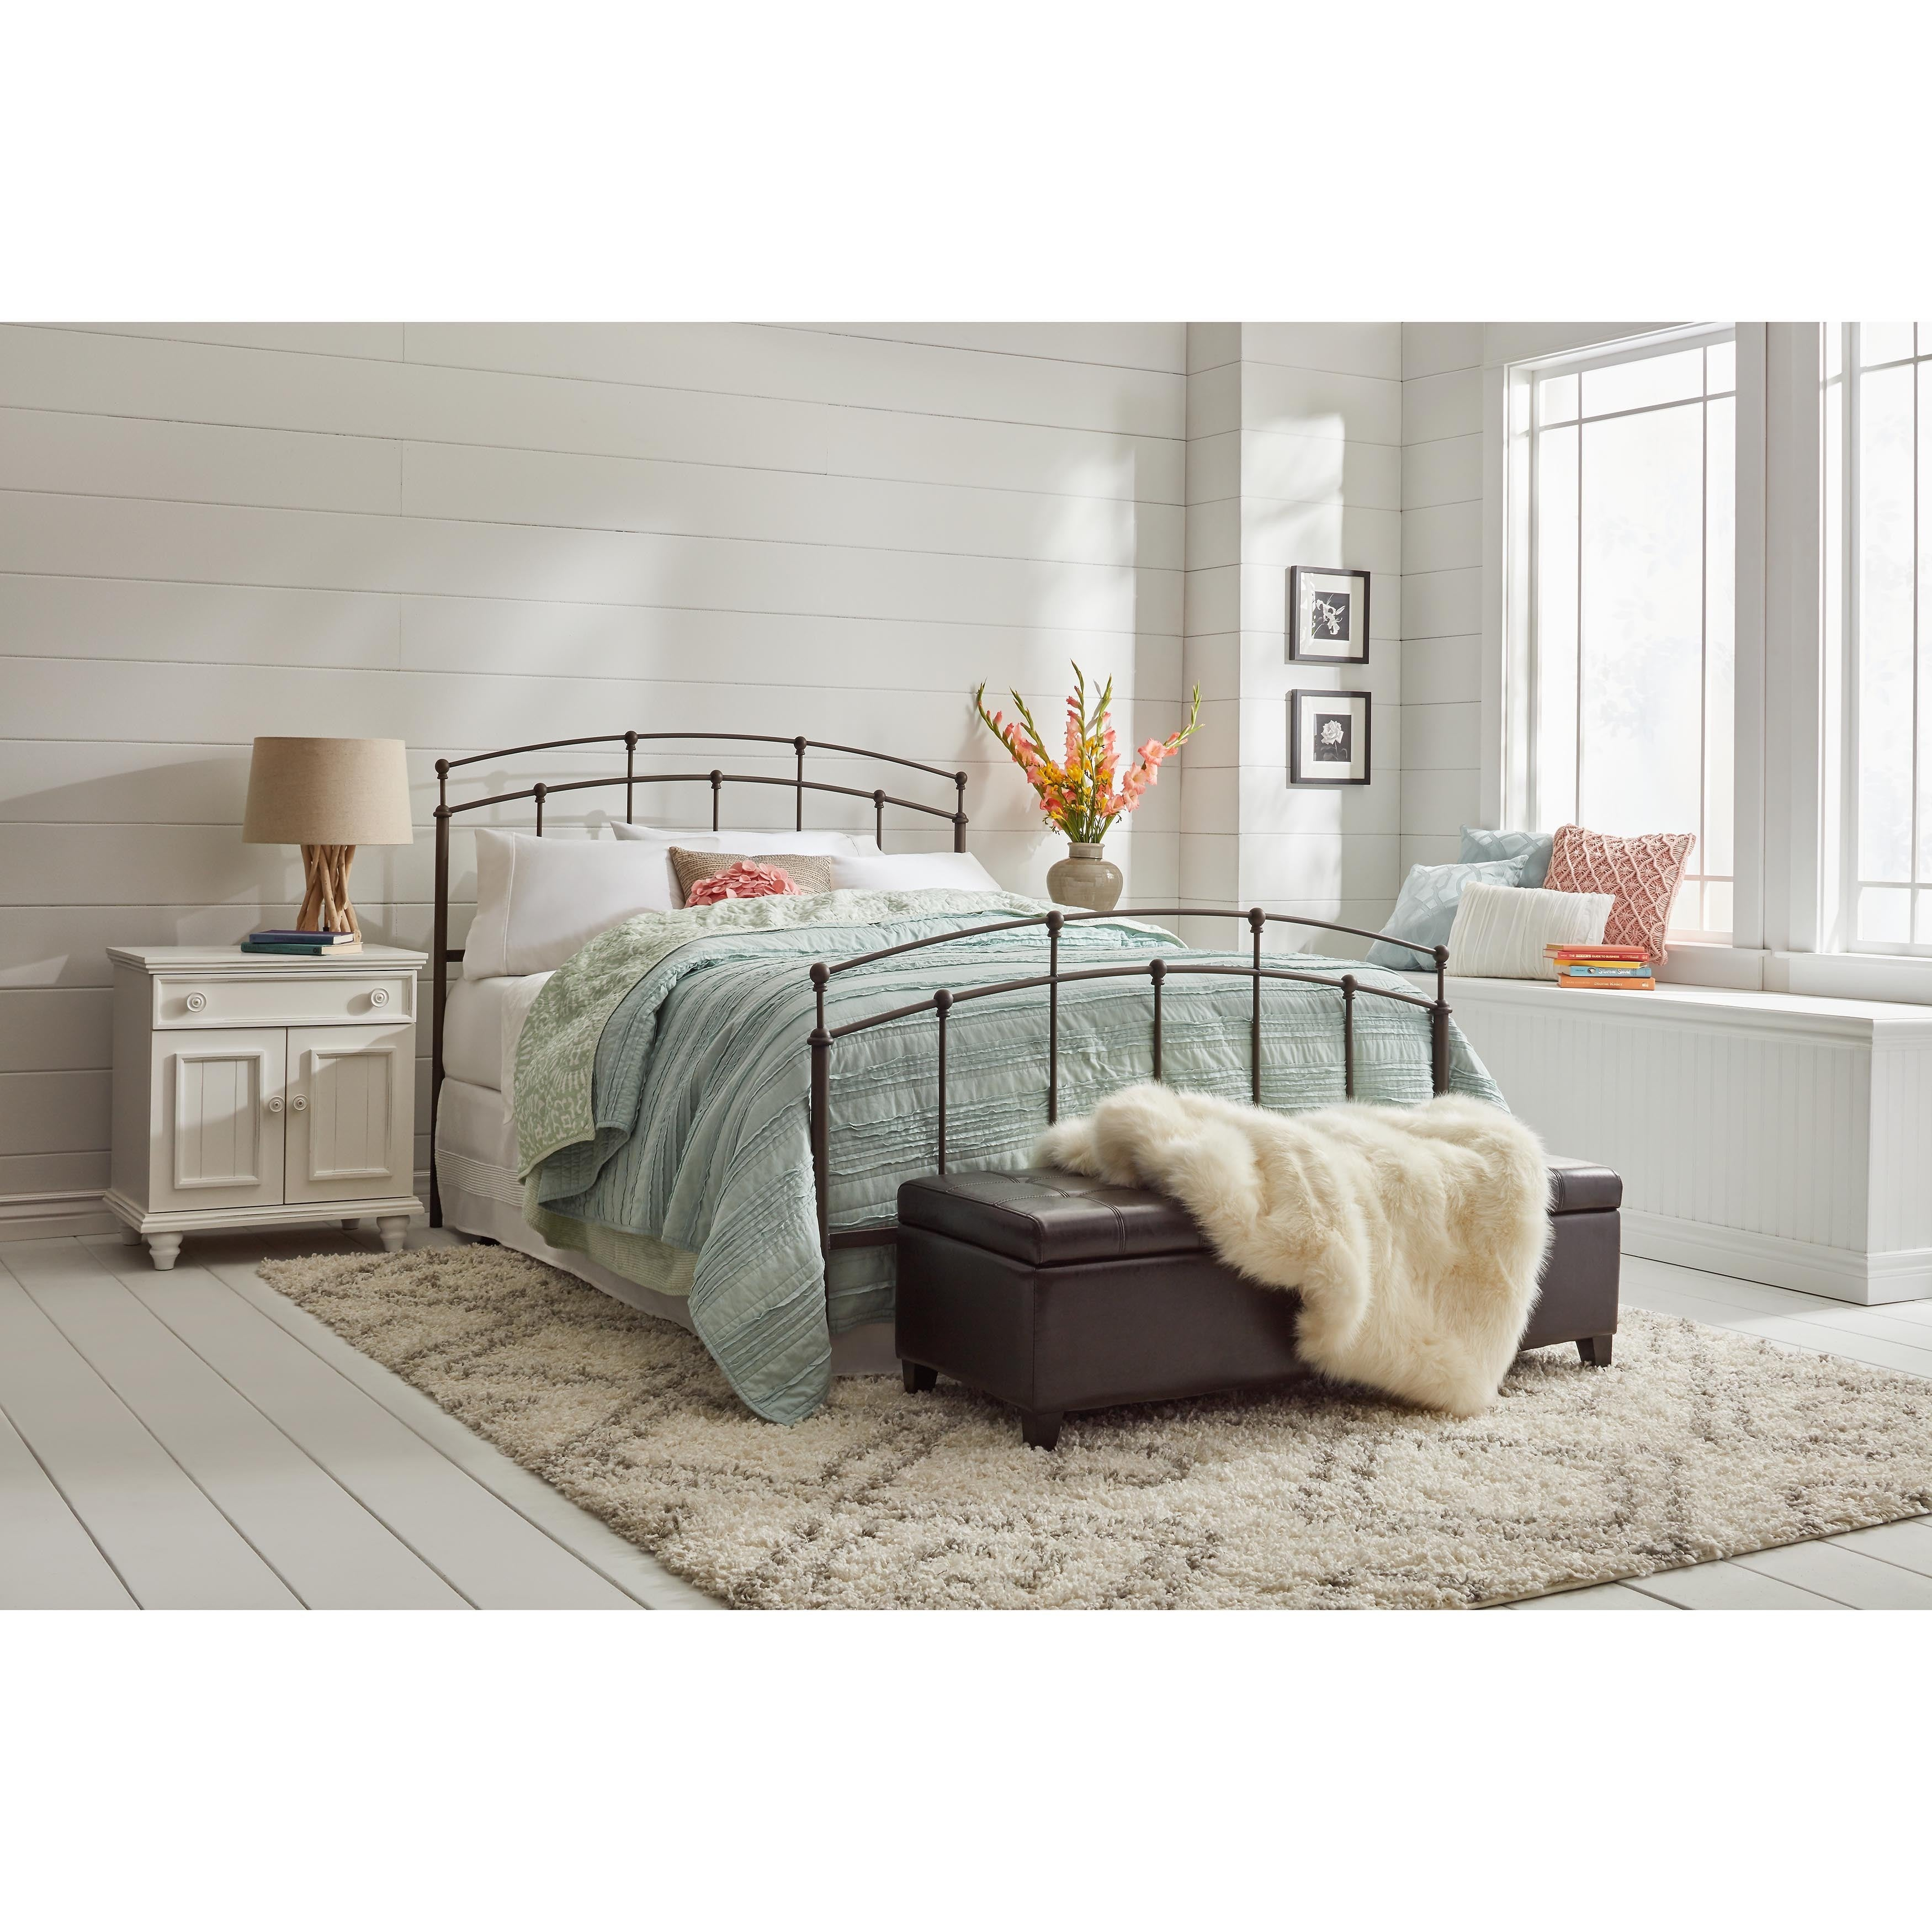 Shop Fenton Complete Bed with Metal Duo Panels and Globe Finials ...